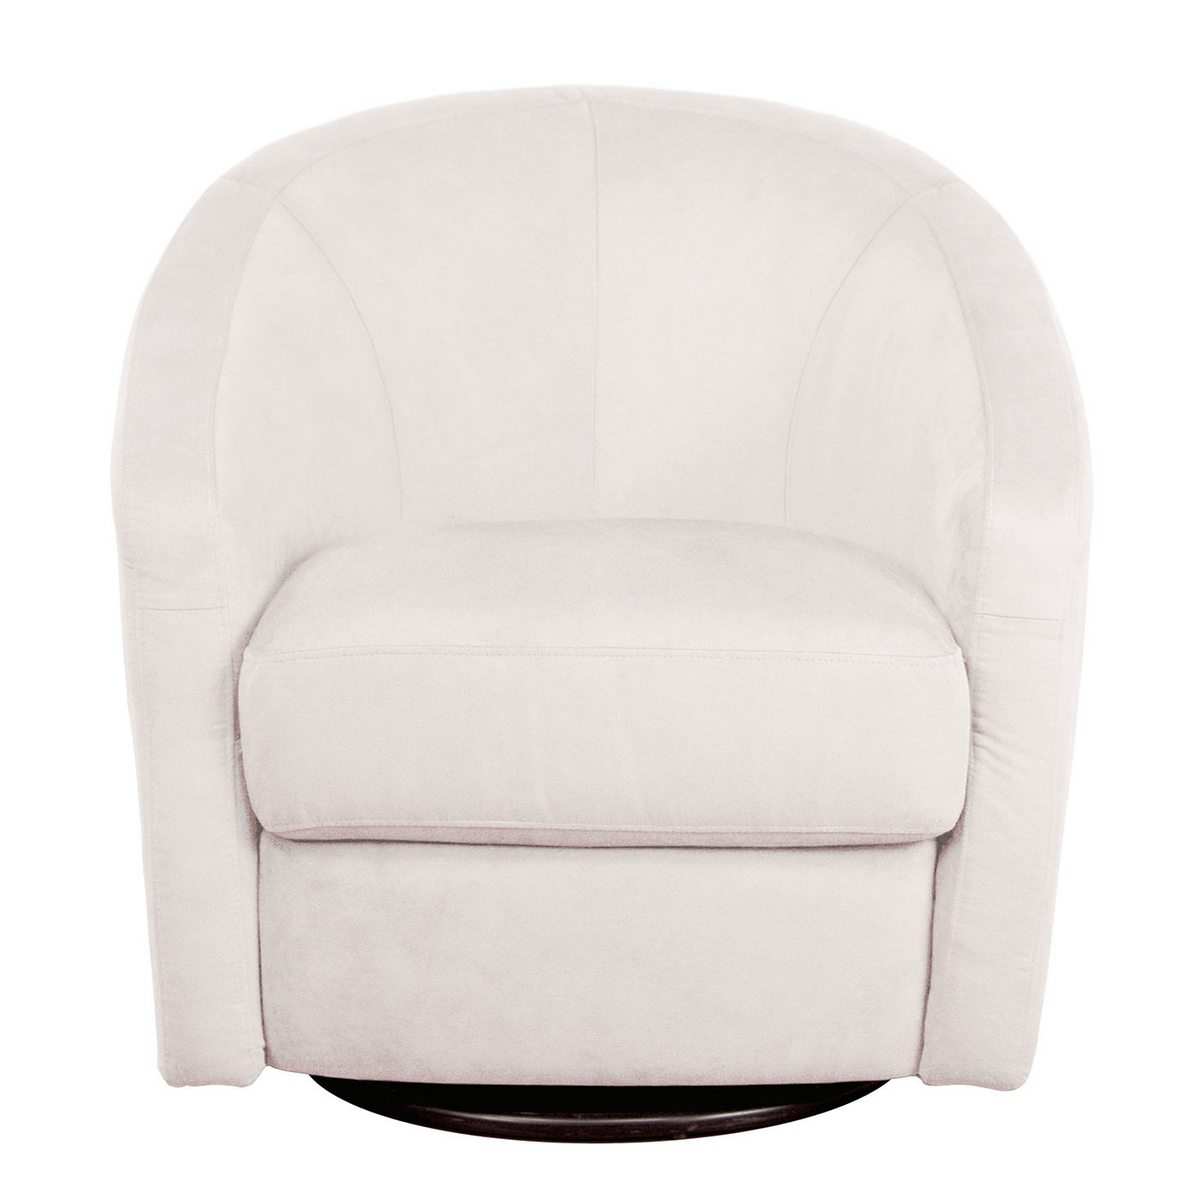 babyletto madison swivel glider in ecru free shipping   -